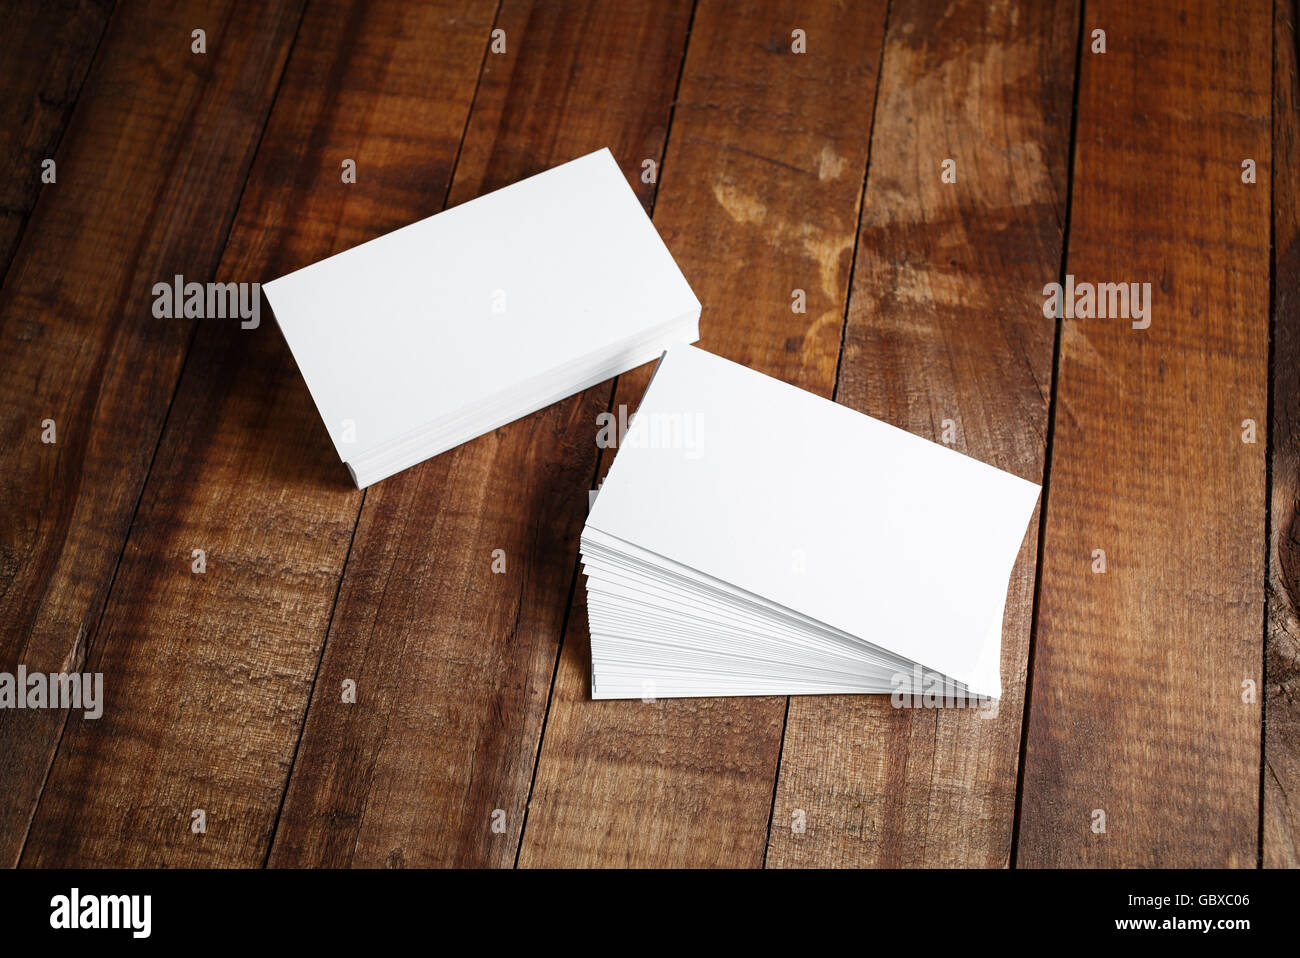 photo of blank business cards on vintage wooden table background